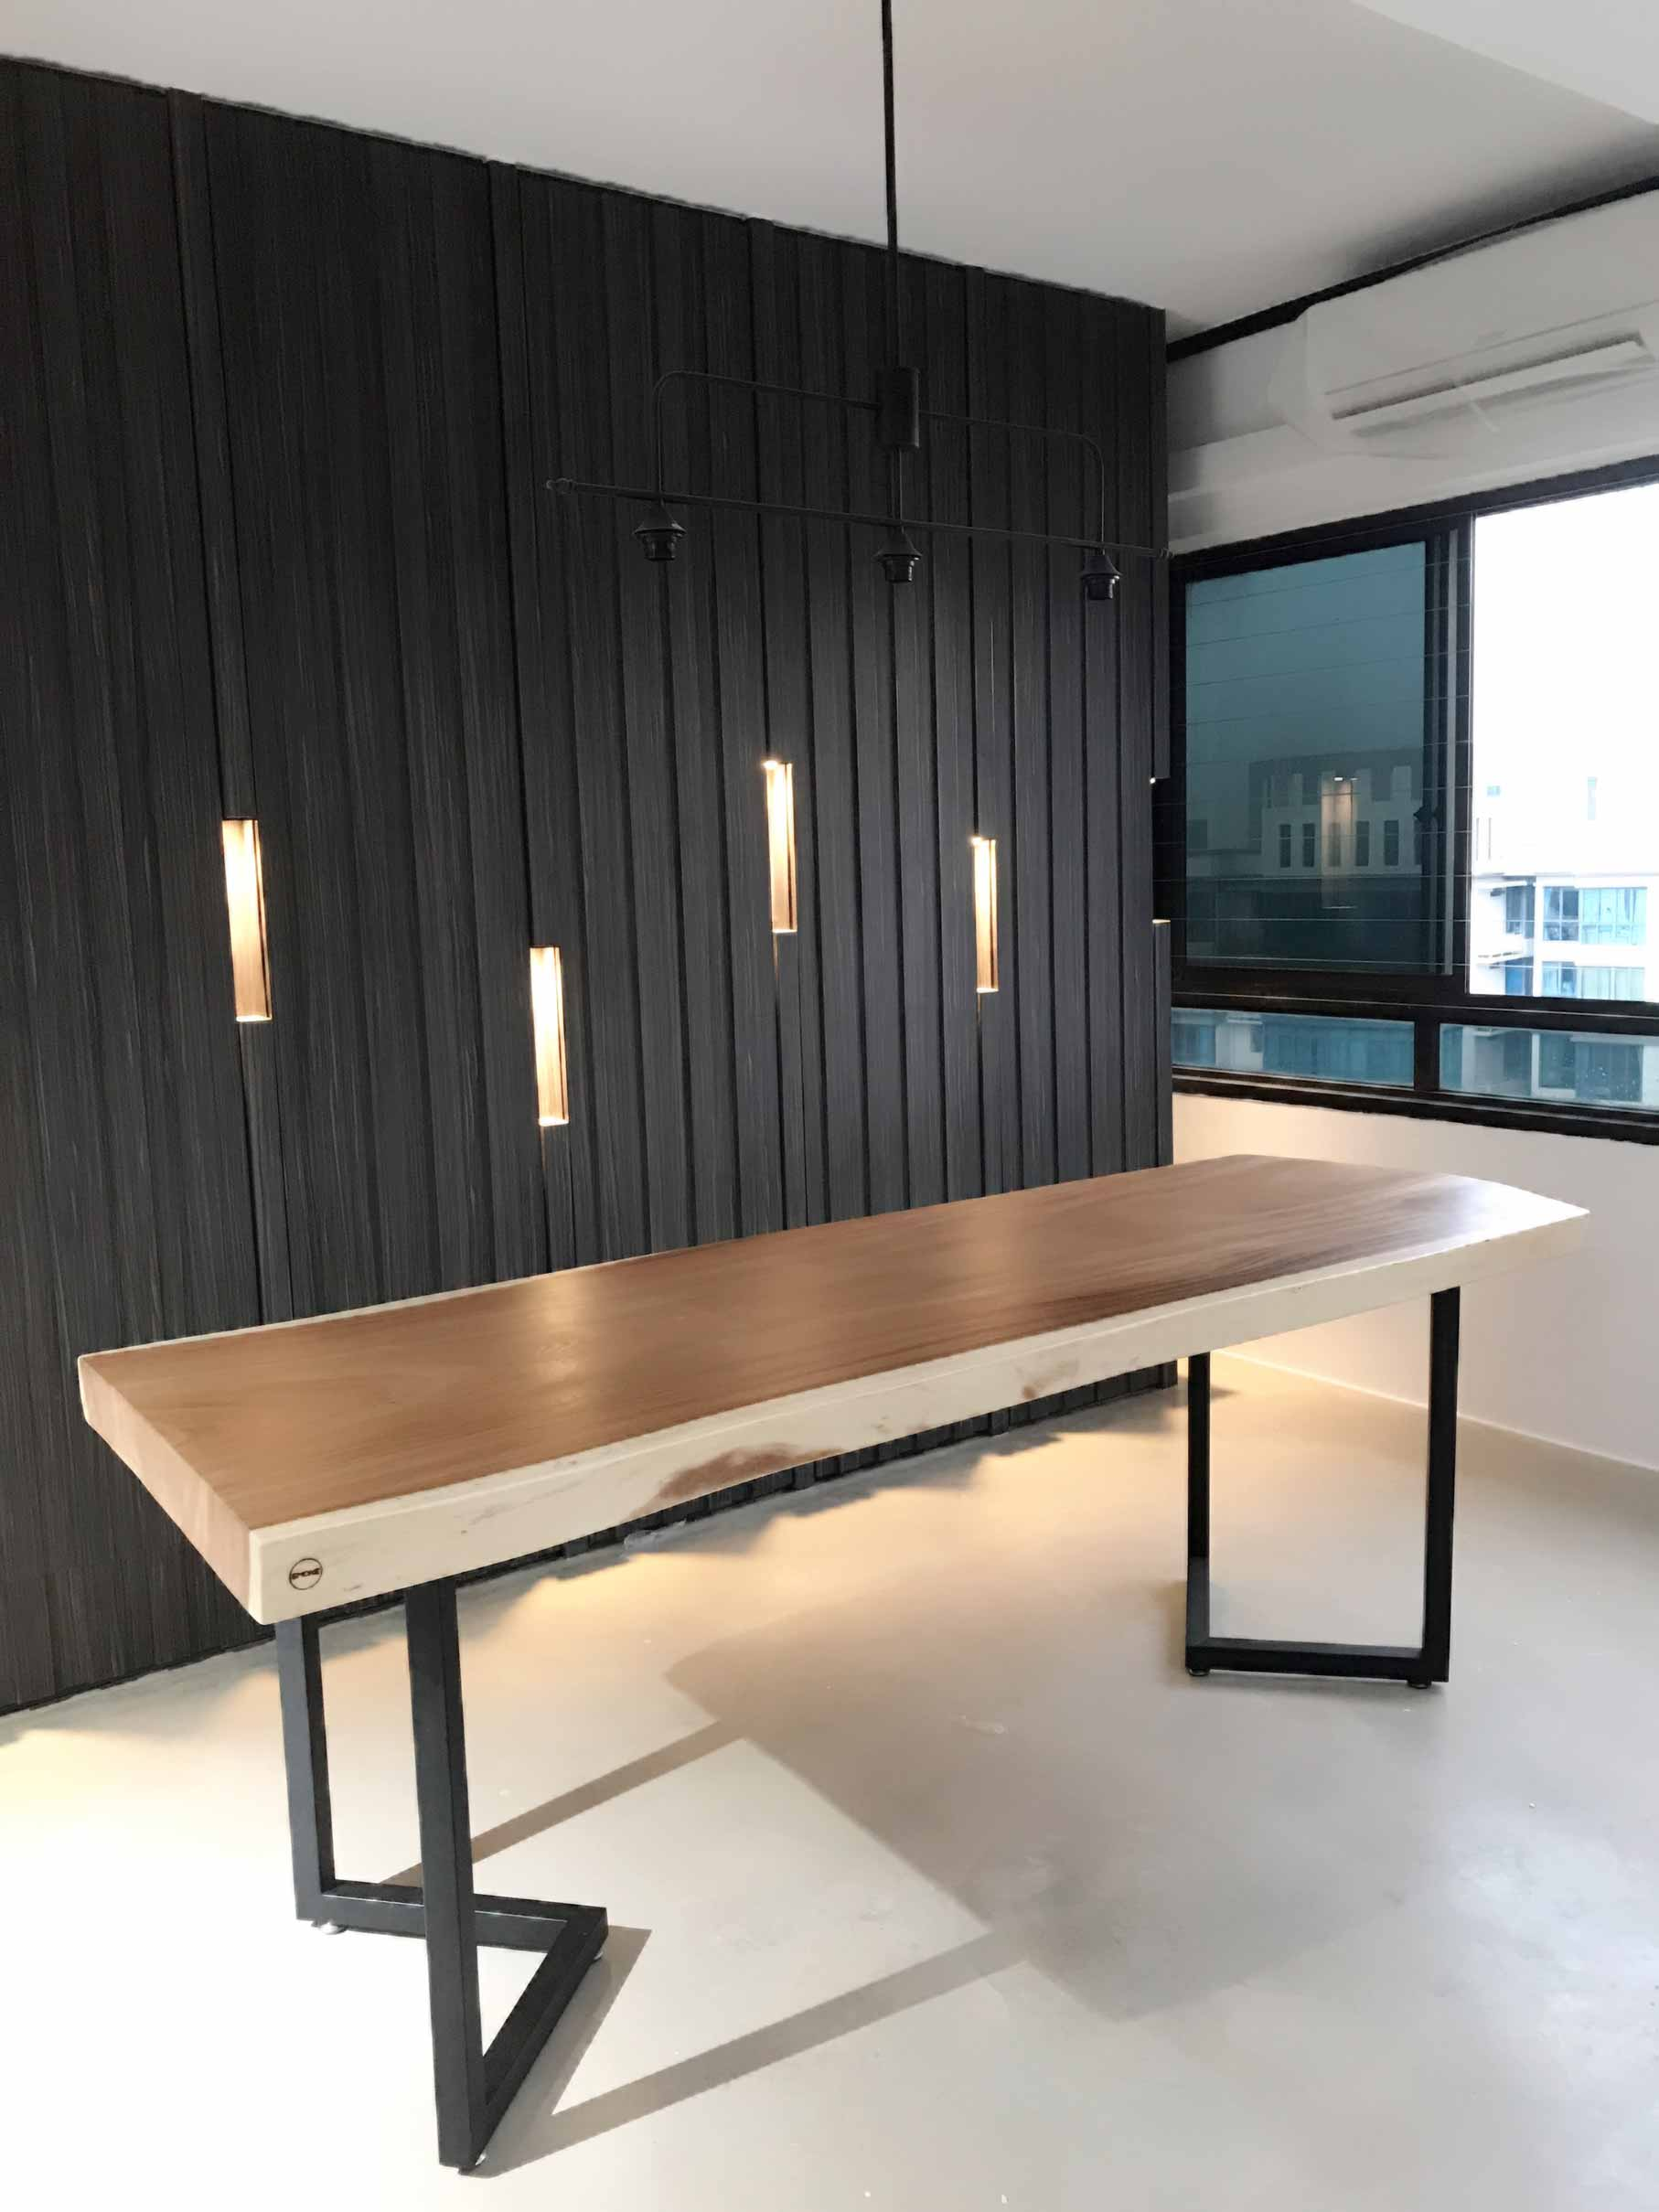 Suar Wood Dining Table at Customer House